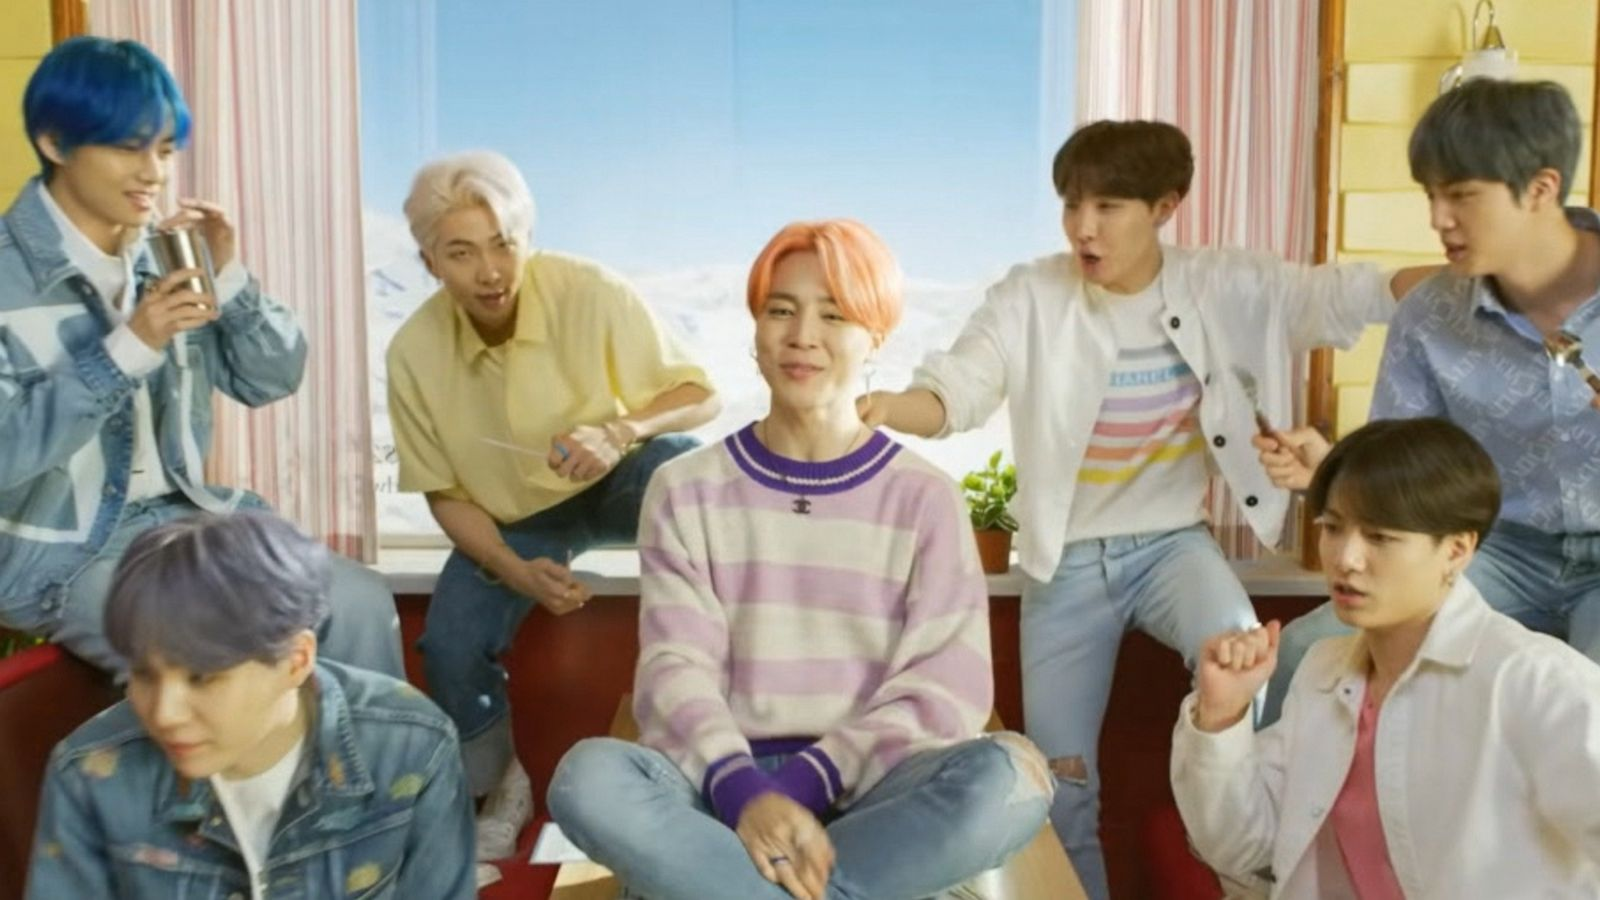 Bts Wallpaper Laptop 2019 Keshowazo